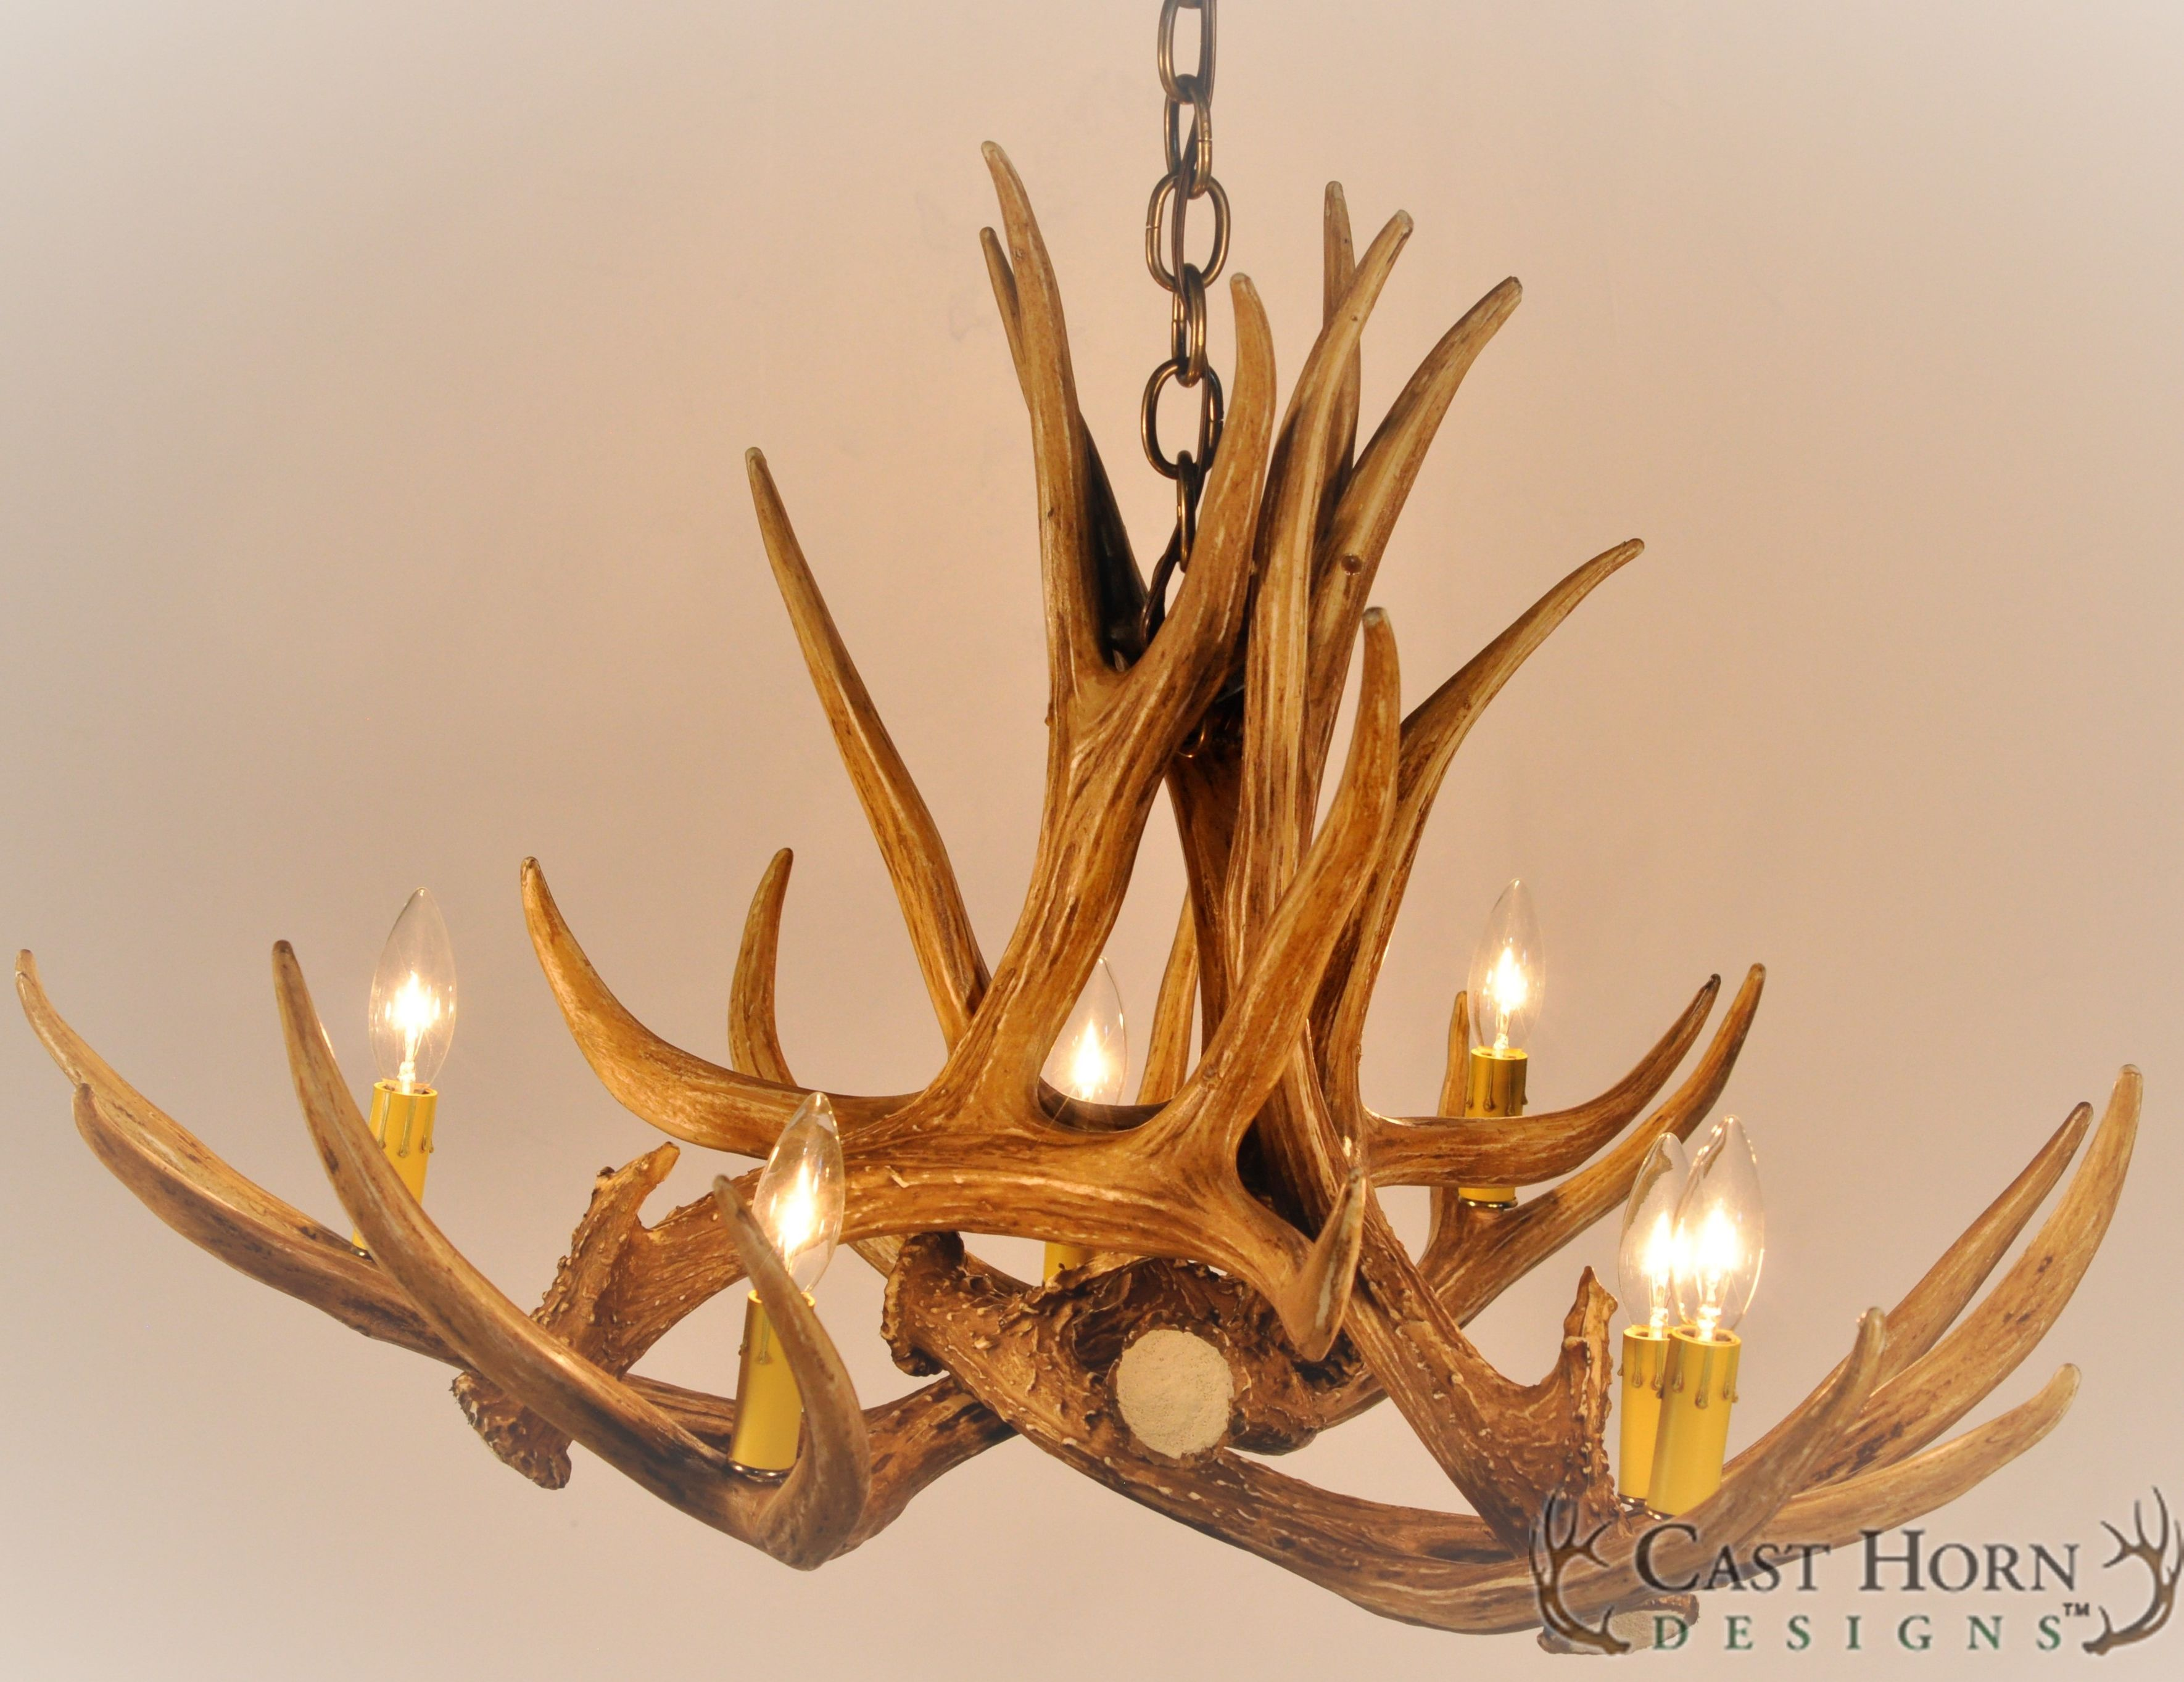 Mule deer 6 antler chandelier by cast horn designs chandeliers cast horn designs is americas largest supplier of rustic decor including antler chandeliers wagon wheel chandeliers european mounts and rustic lighting arubaitofo Choice Image